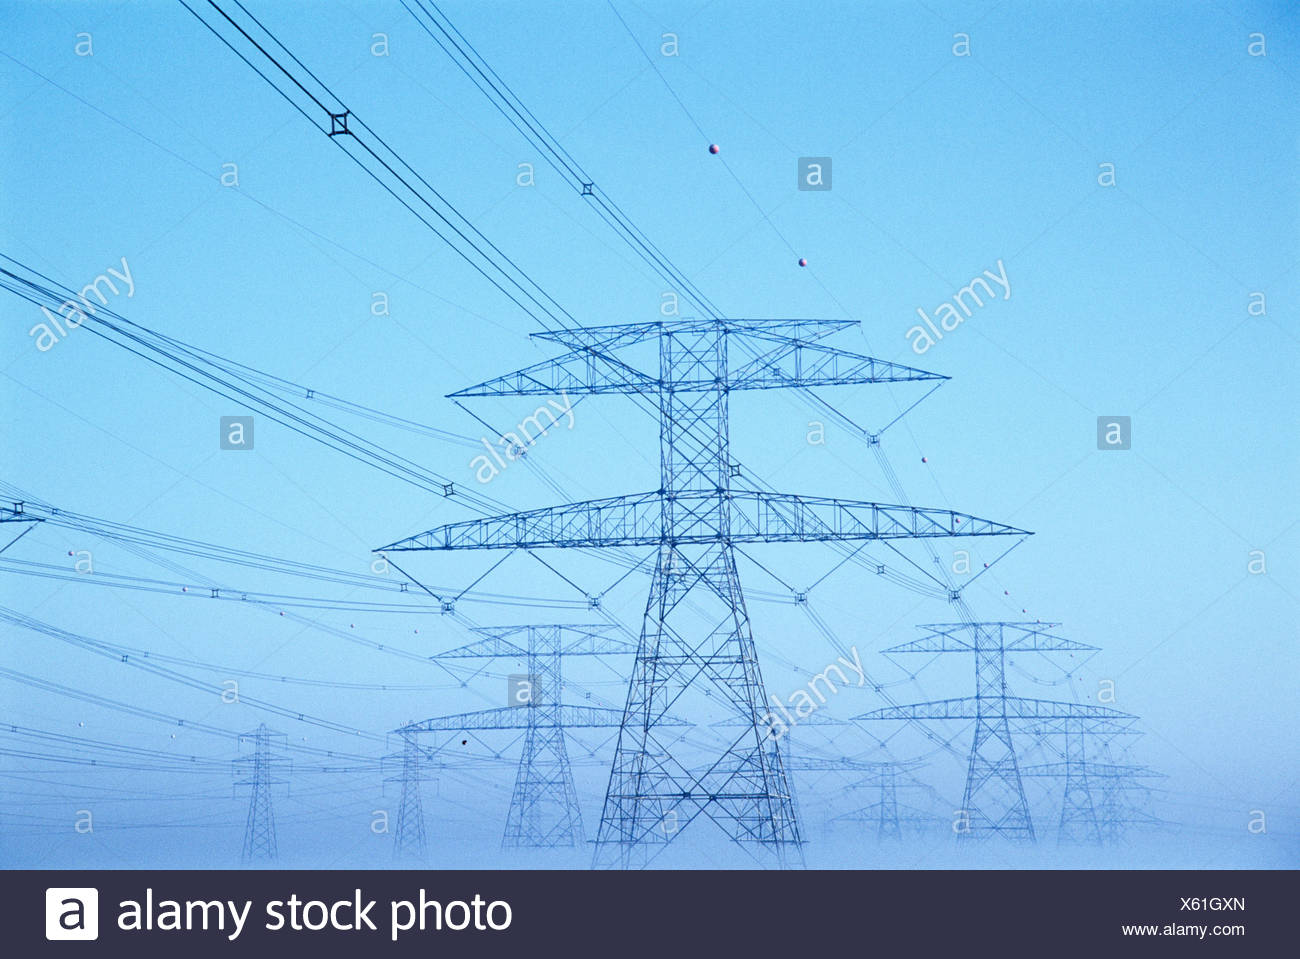 Electricity pylons supporting power lines. - Stock Image